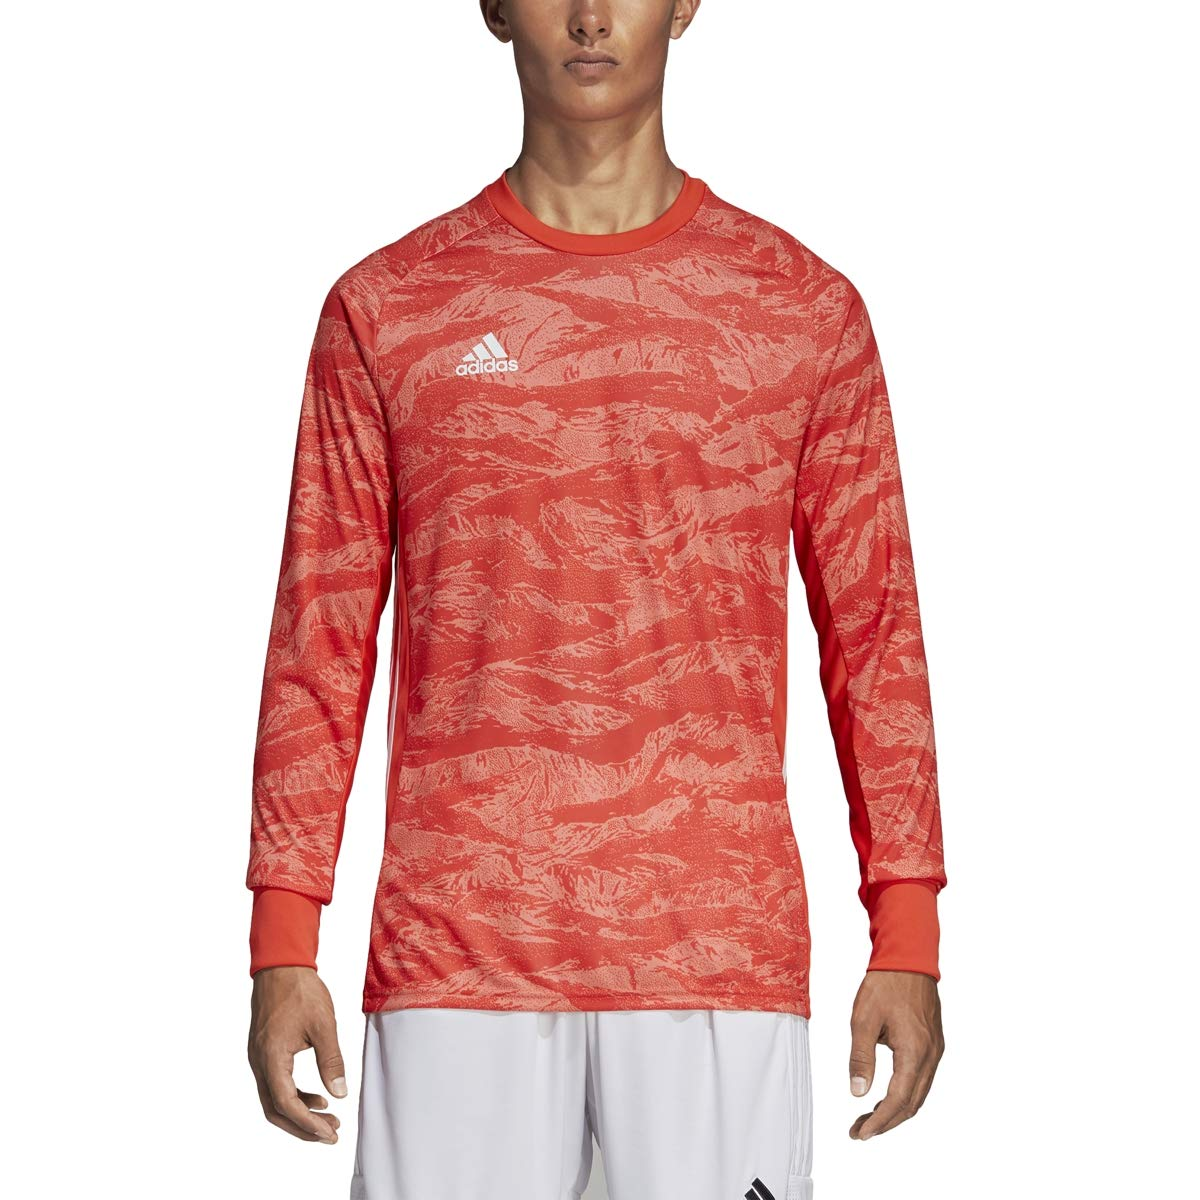 adidas AdiPro 19 Goalkeeper Long Sleeve Jersey (Small, semi Solar red) by adidas